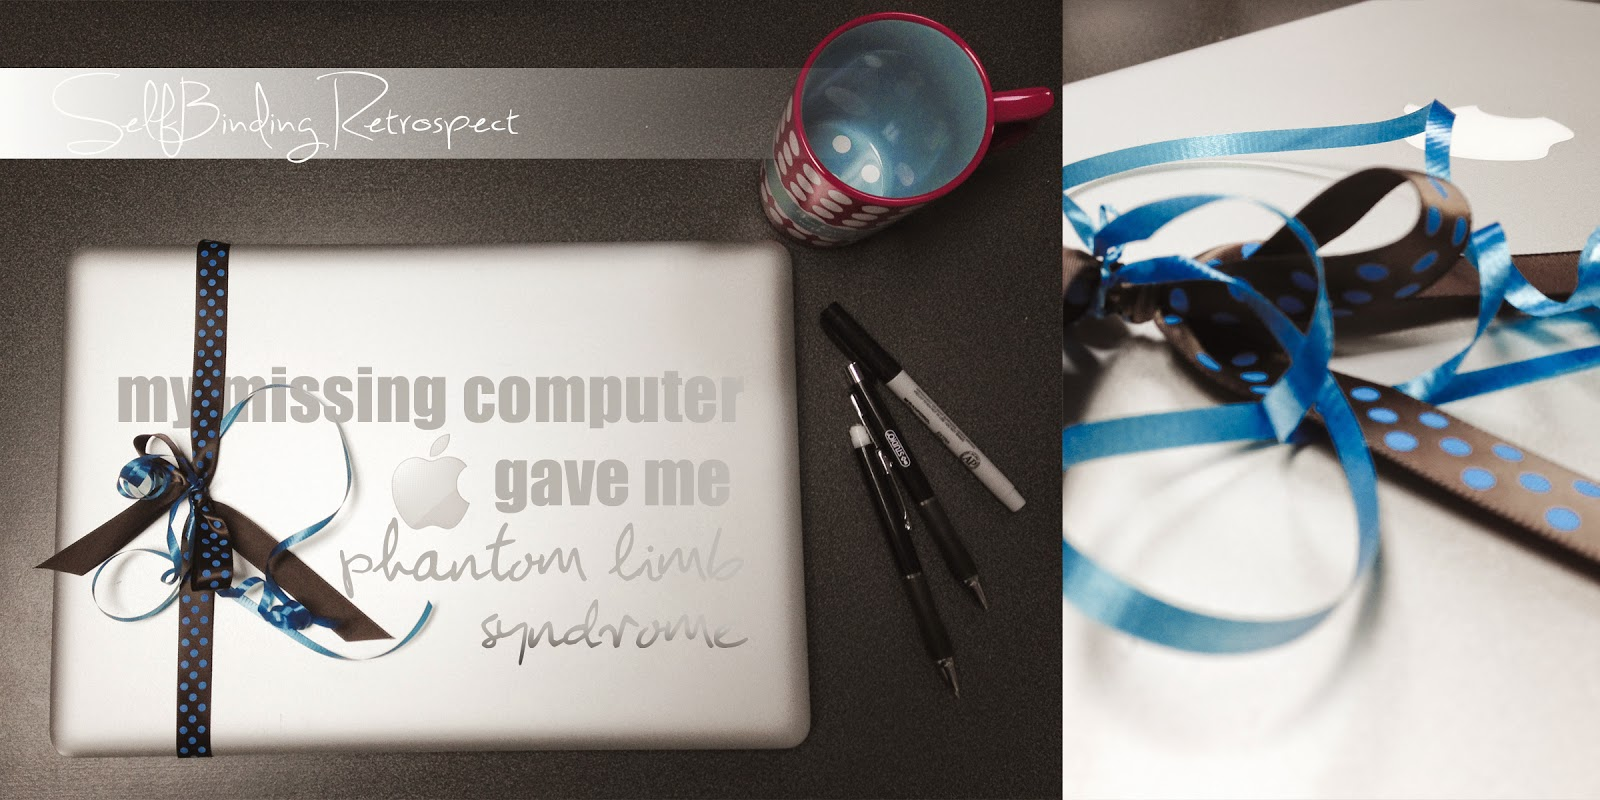 My Missing Computer Gave Me Phantom Limb Syndrome - SelfBinding Retrospect by Alanna Rusnak